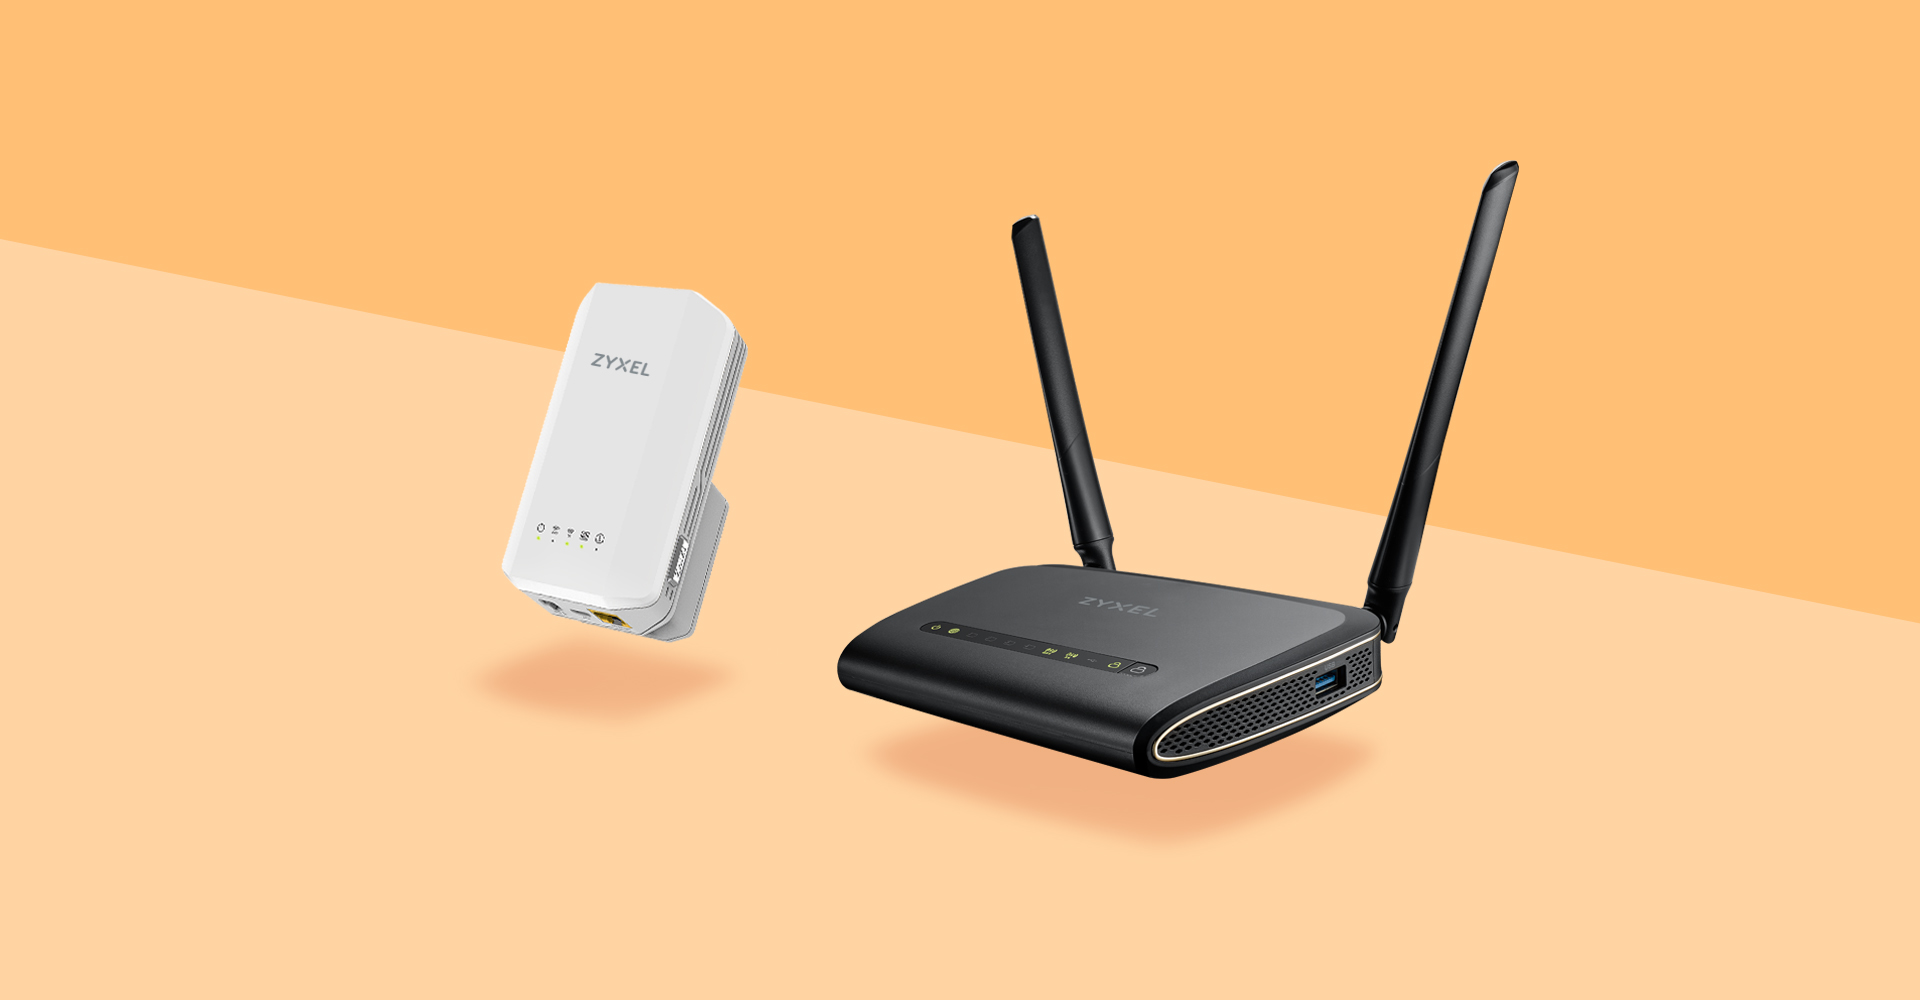 How to connect WiFi router ZyXEL 22